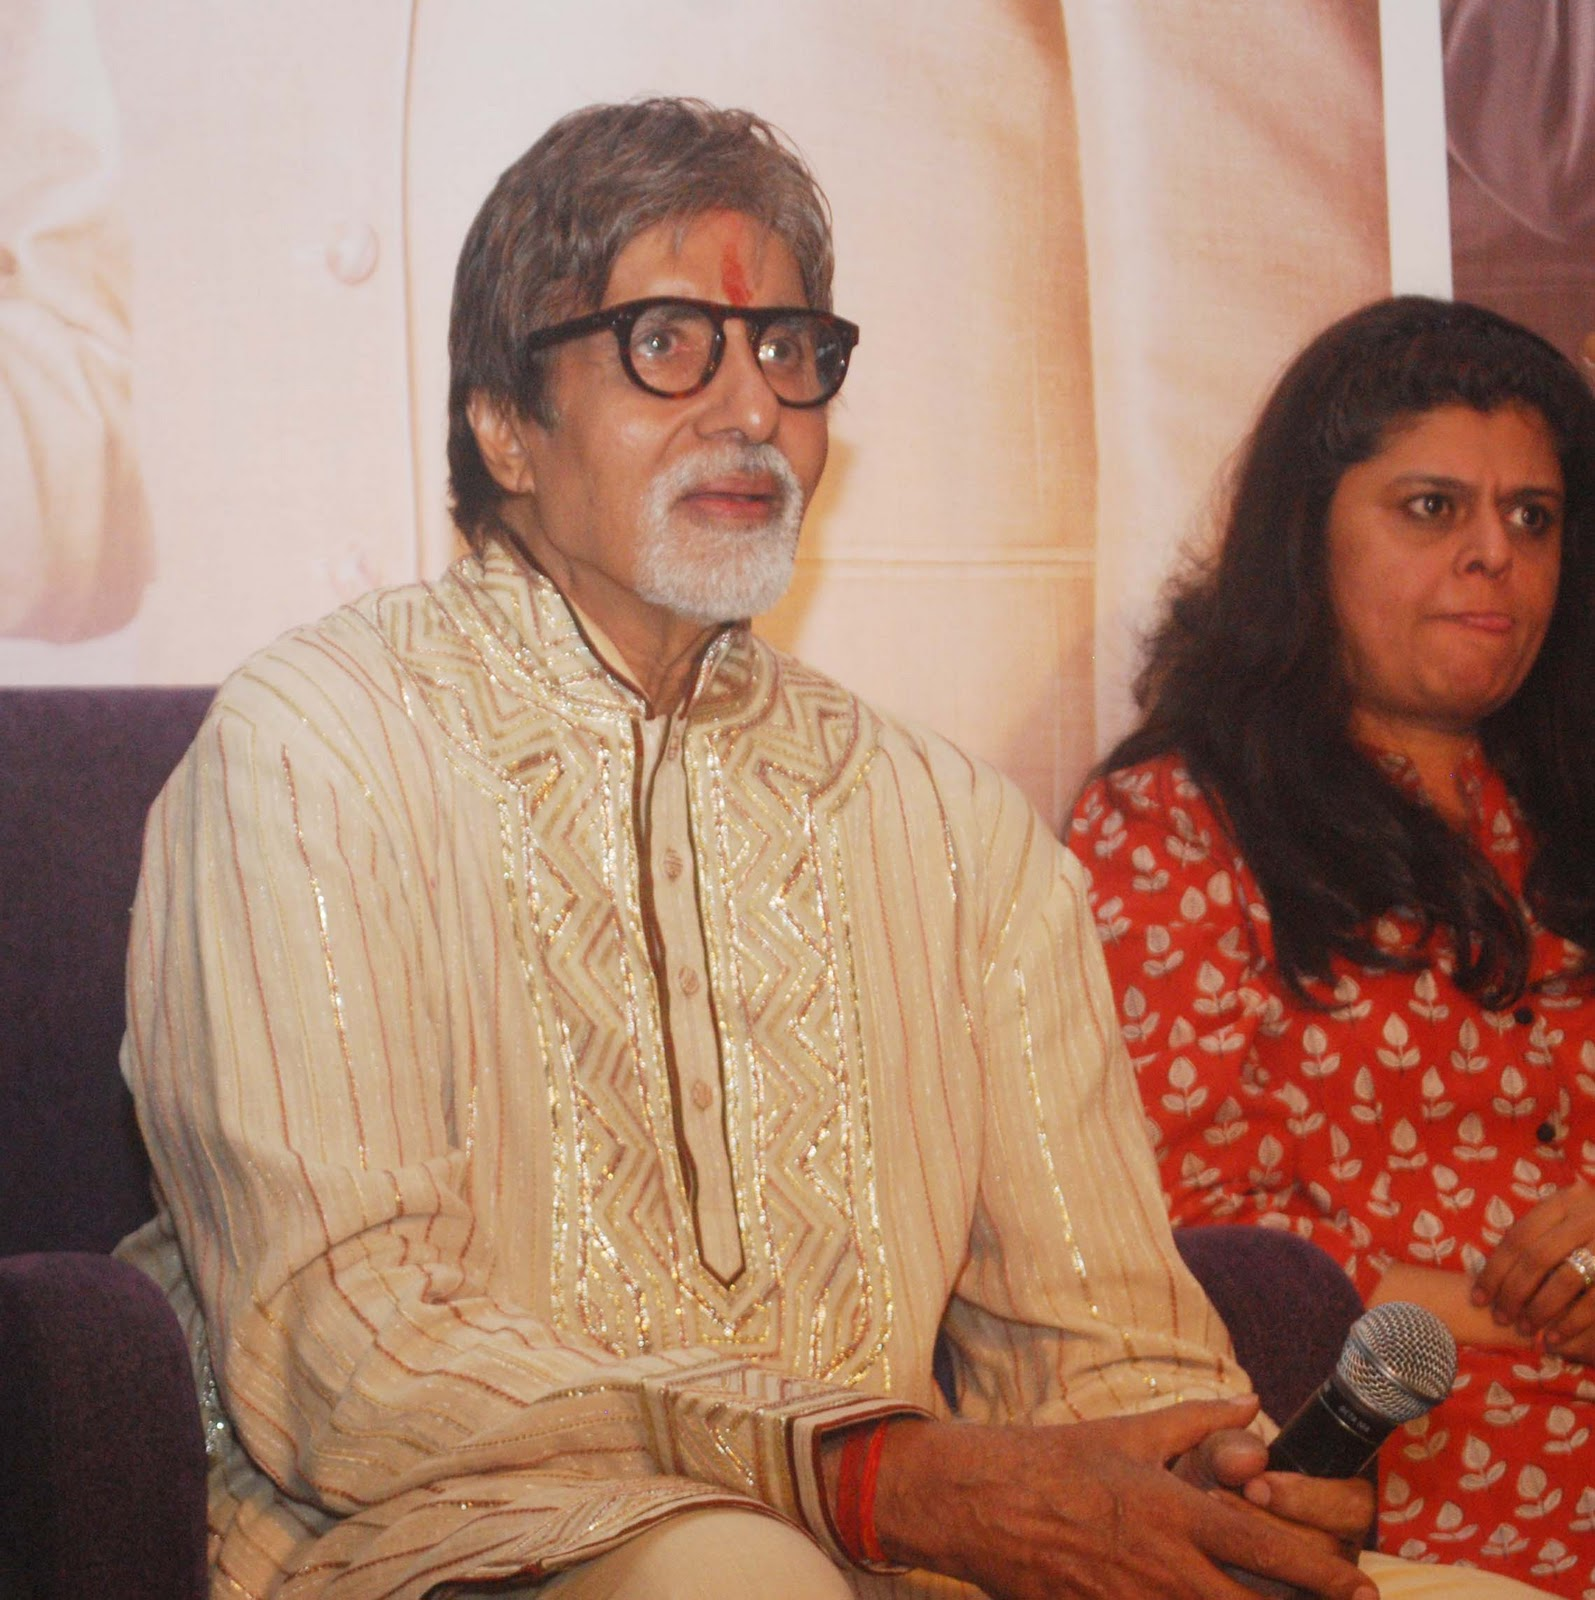 Download Song Lock Up By Karan: Amitabh Bachchan Birthday Celebration With Sony Tv